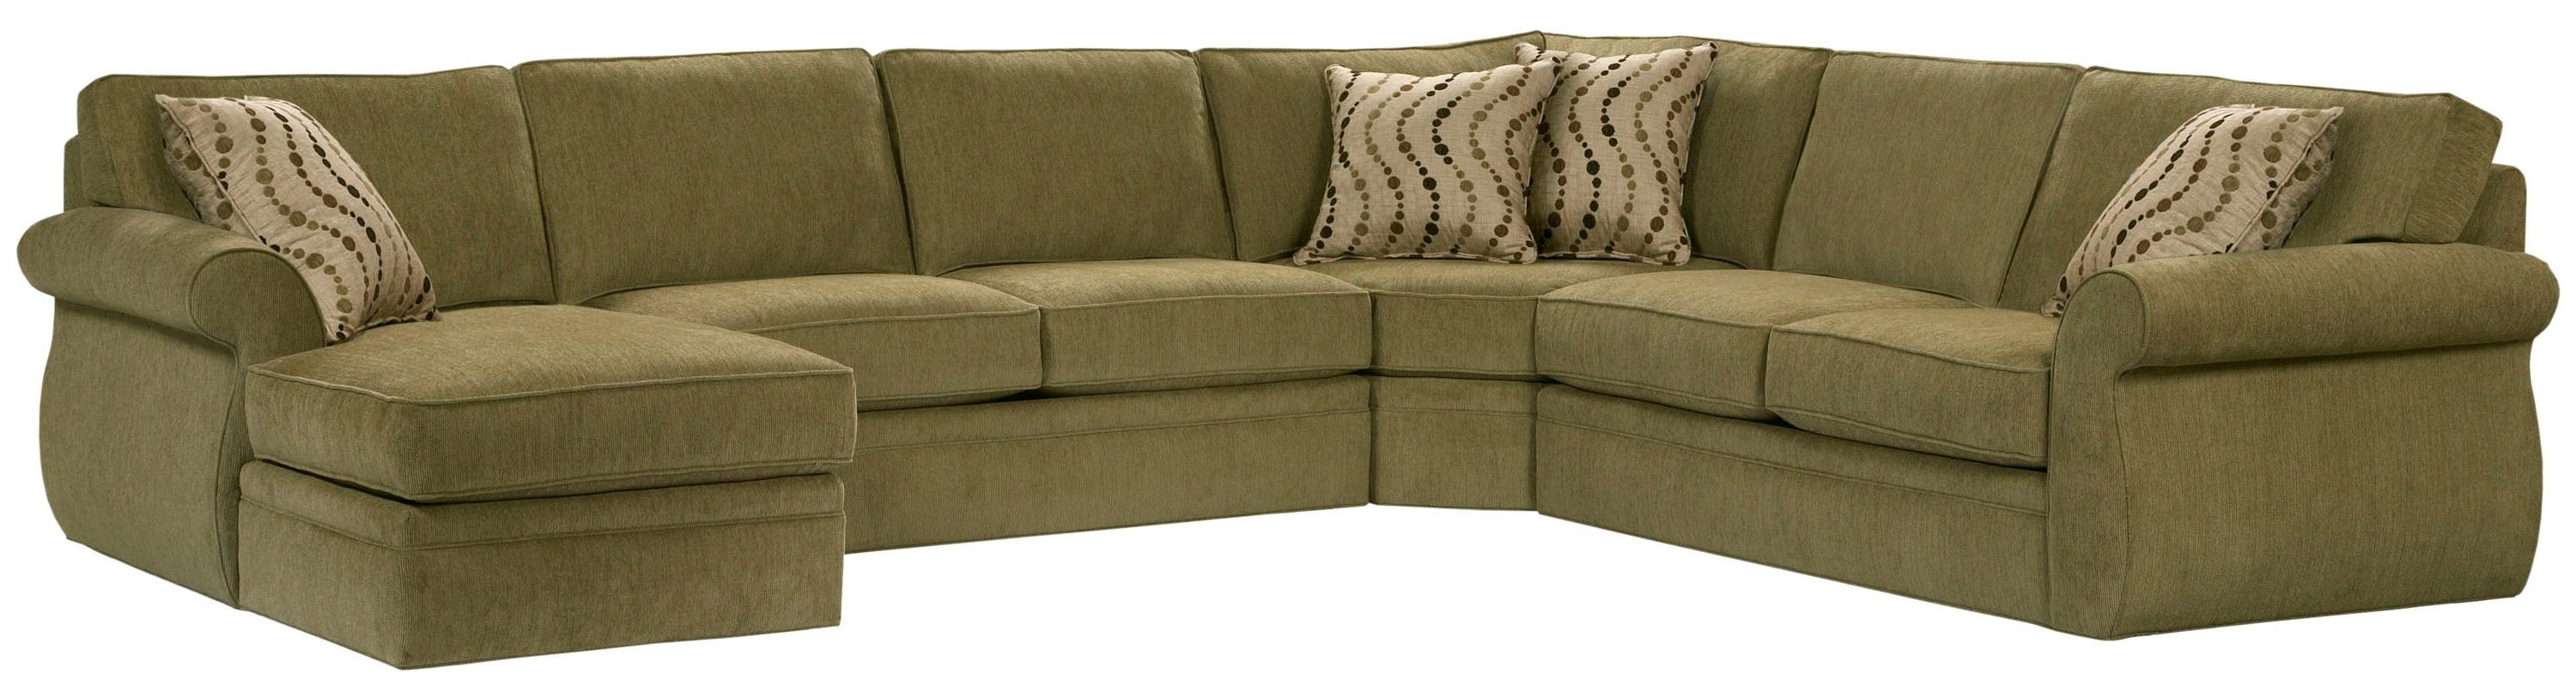 Current Sectional Sofas At Broyhill With Broyhill Furniture Veronica Right Arm Facing Customizable Chaise (View 6 of 20)